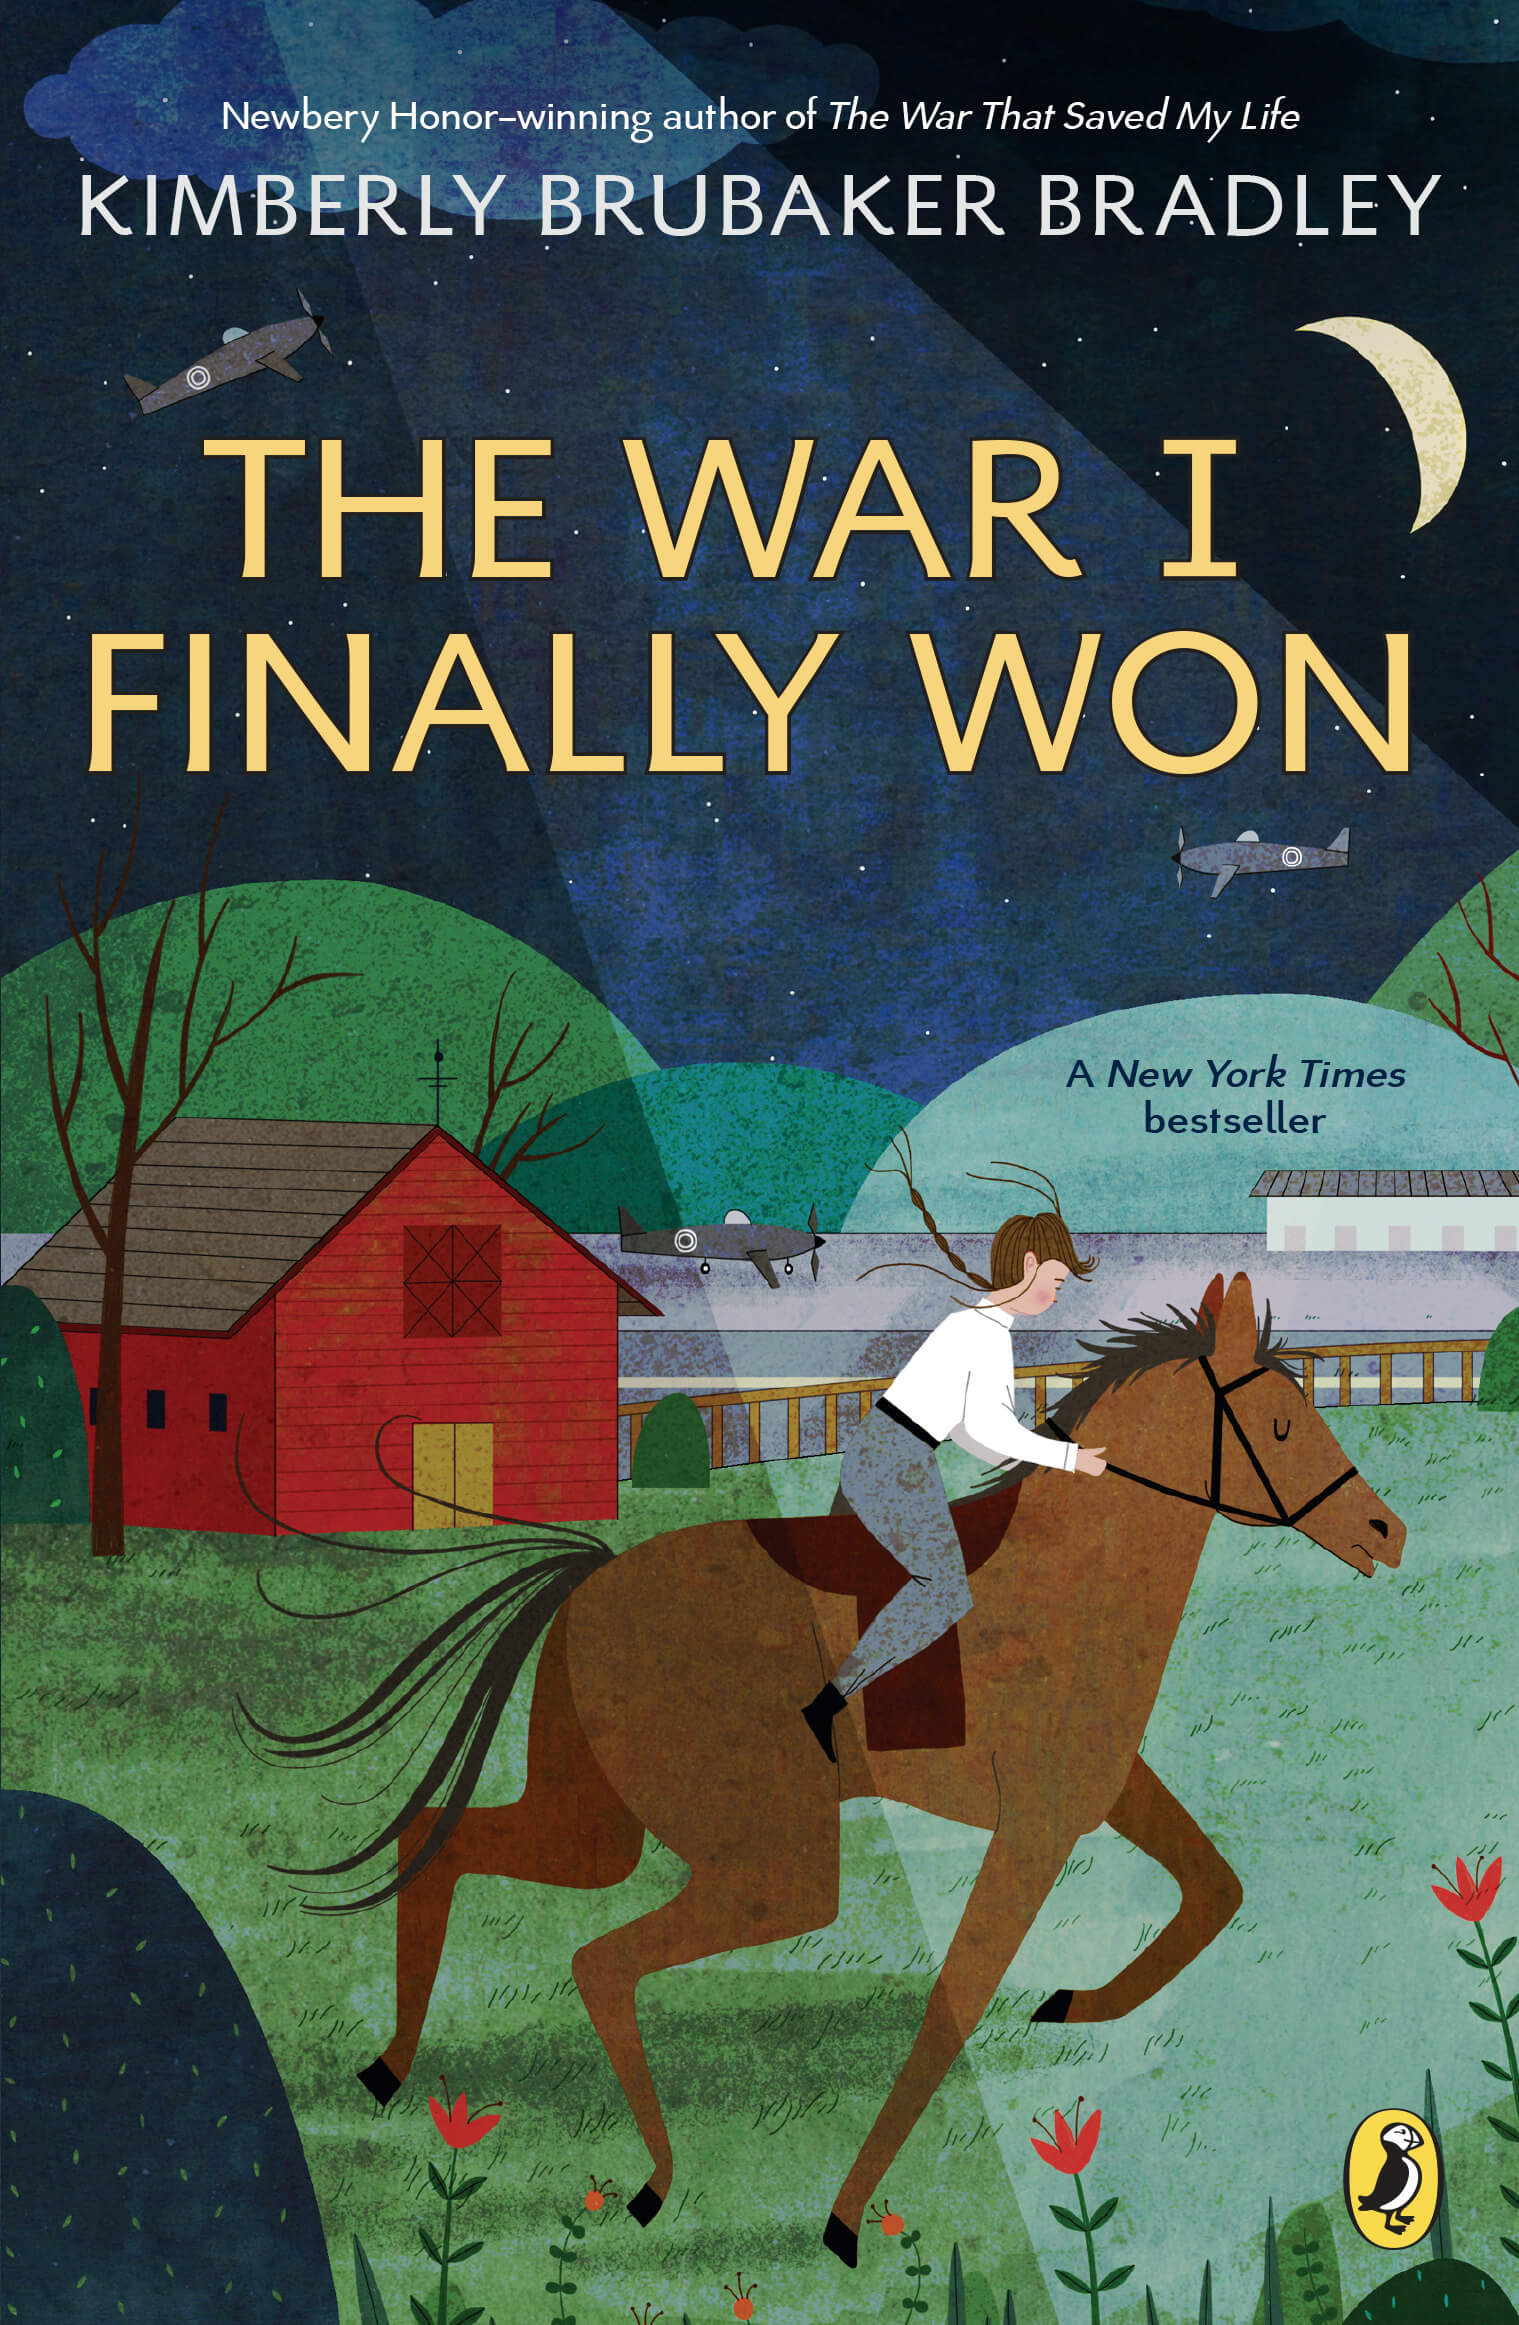 The War I Finally Won Book by Kimberly Brubaker Bradley